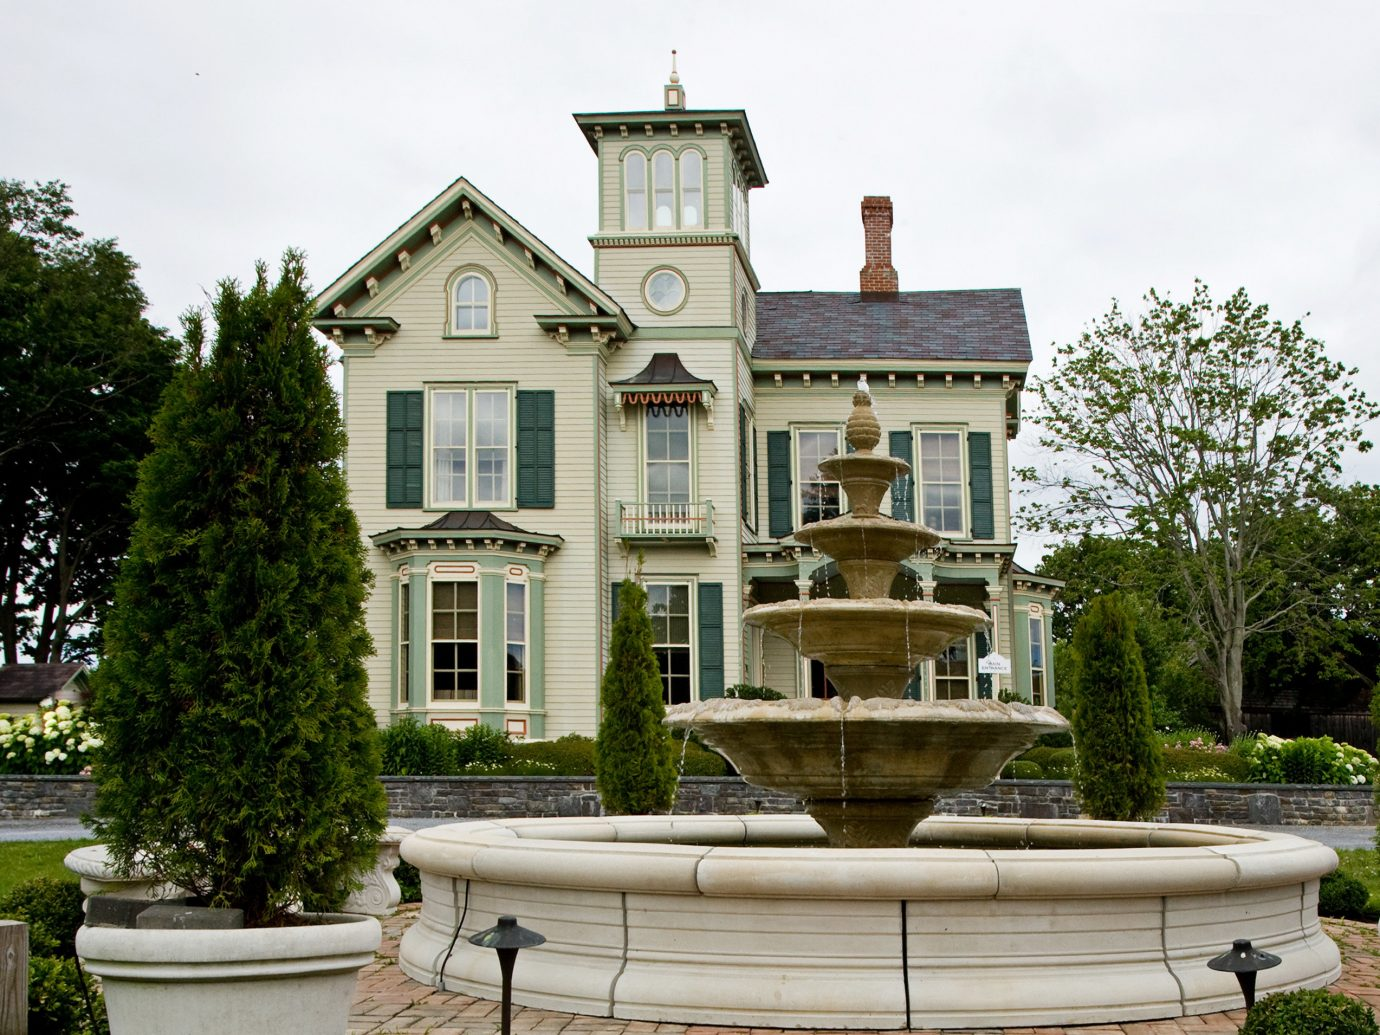 Boutique Country Eco Exterior Inn Outdoors Travel Tips tree outdoor house estate building home neighbourhood Architecture mansion château residential area facade manor house Courtyard cottage Garden stone